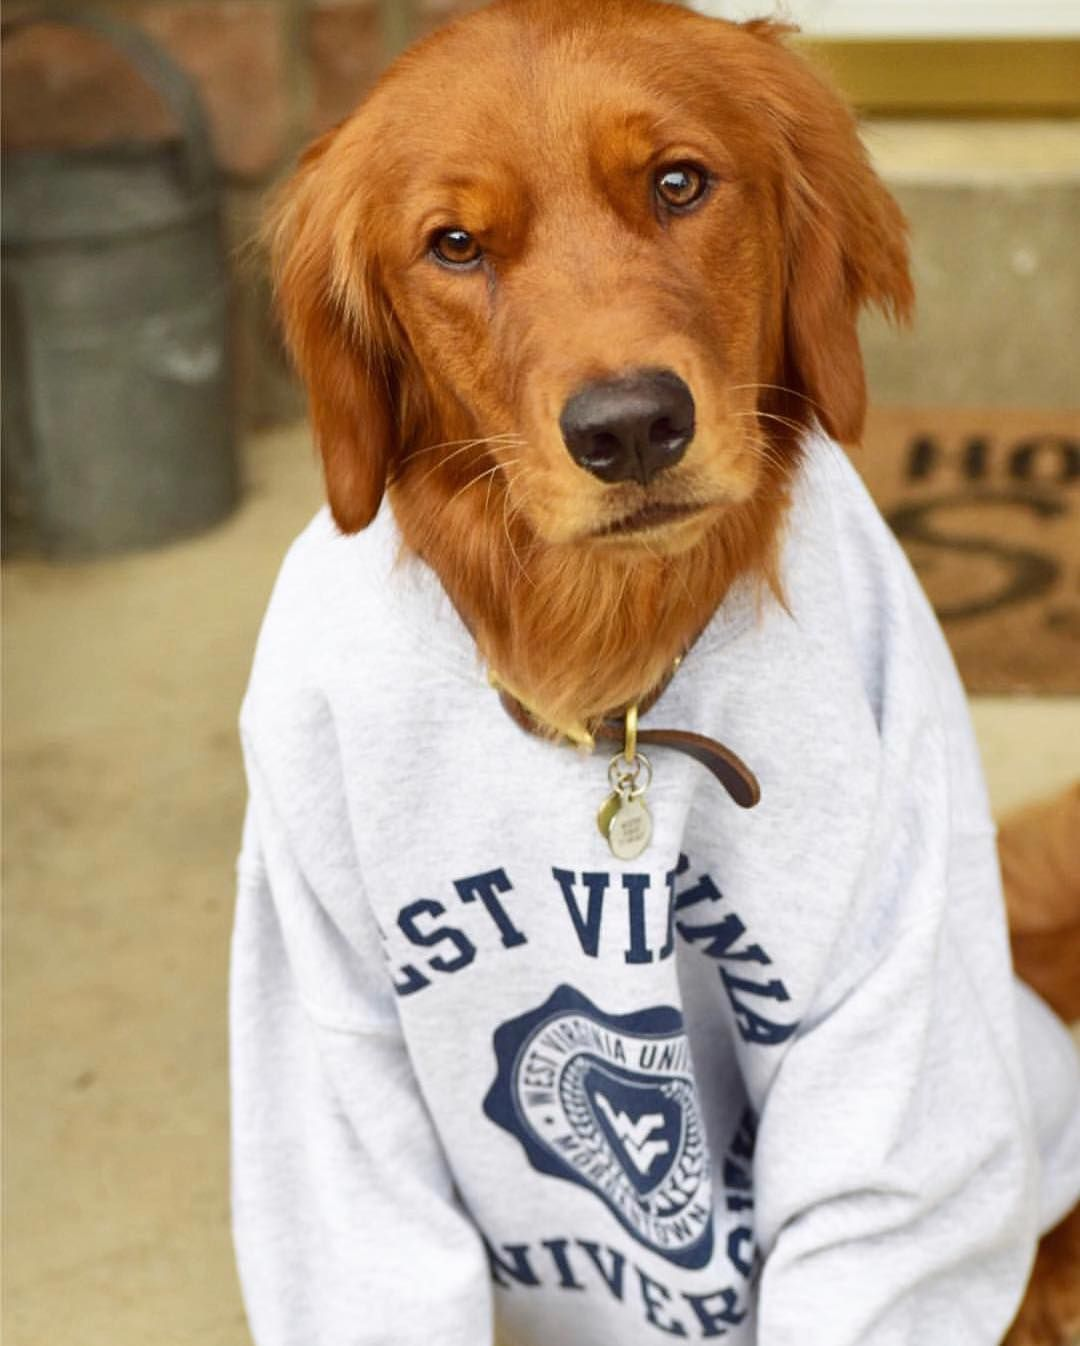 We Re Pawsitively Sure That The Mountaineers Are The Best Wvu Mountaineers Letsgomountaineers Westvirginia We Dogs West Virginia University West Virginia